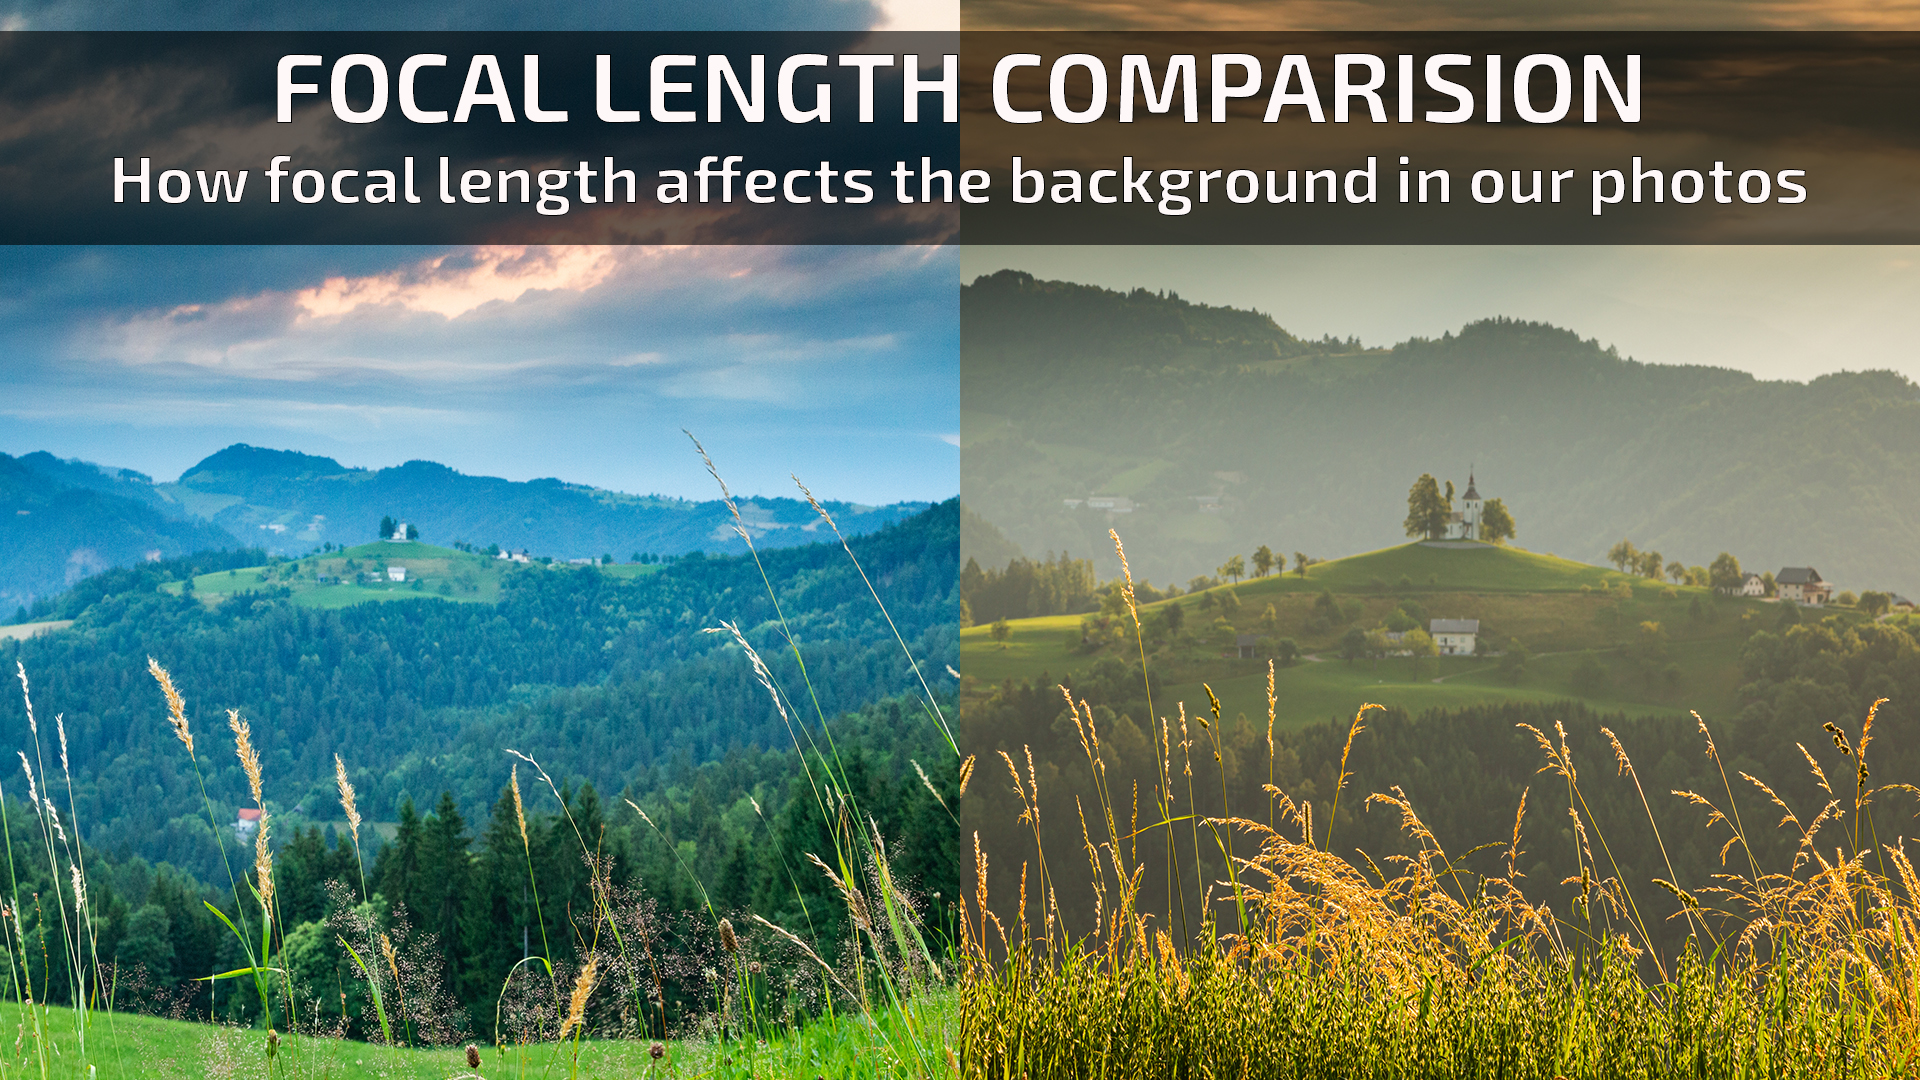 Focal length comparision